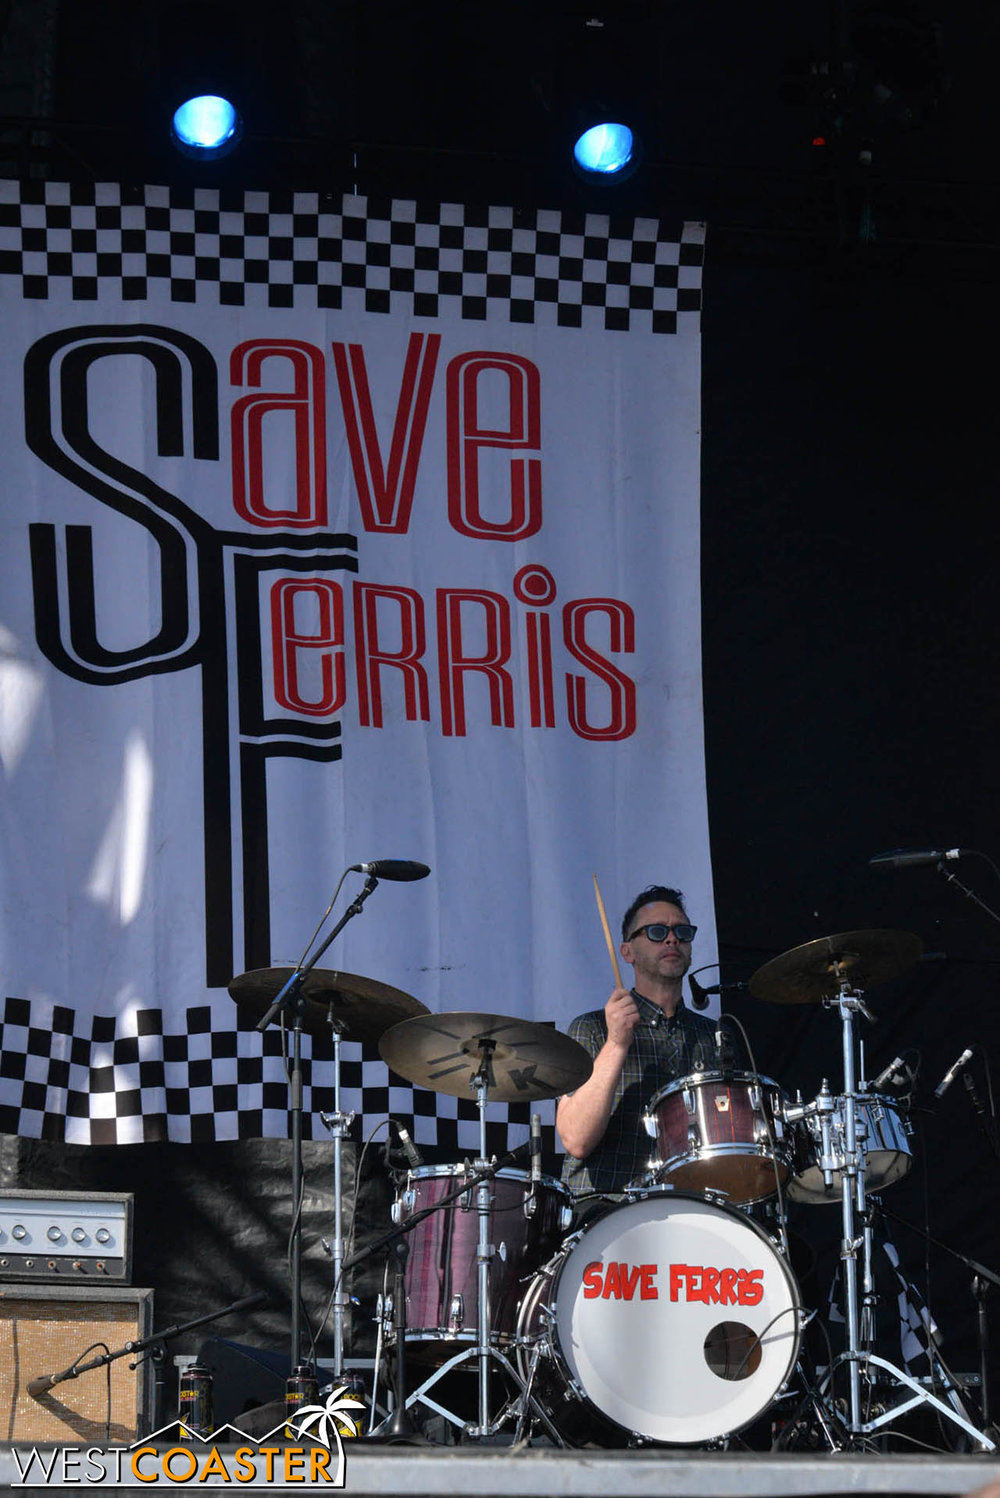 B2tB-18_0504-D-Music-6-SaveFerris-0008.jpg